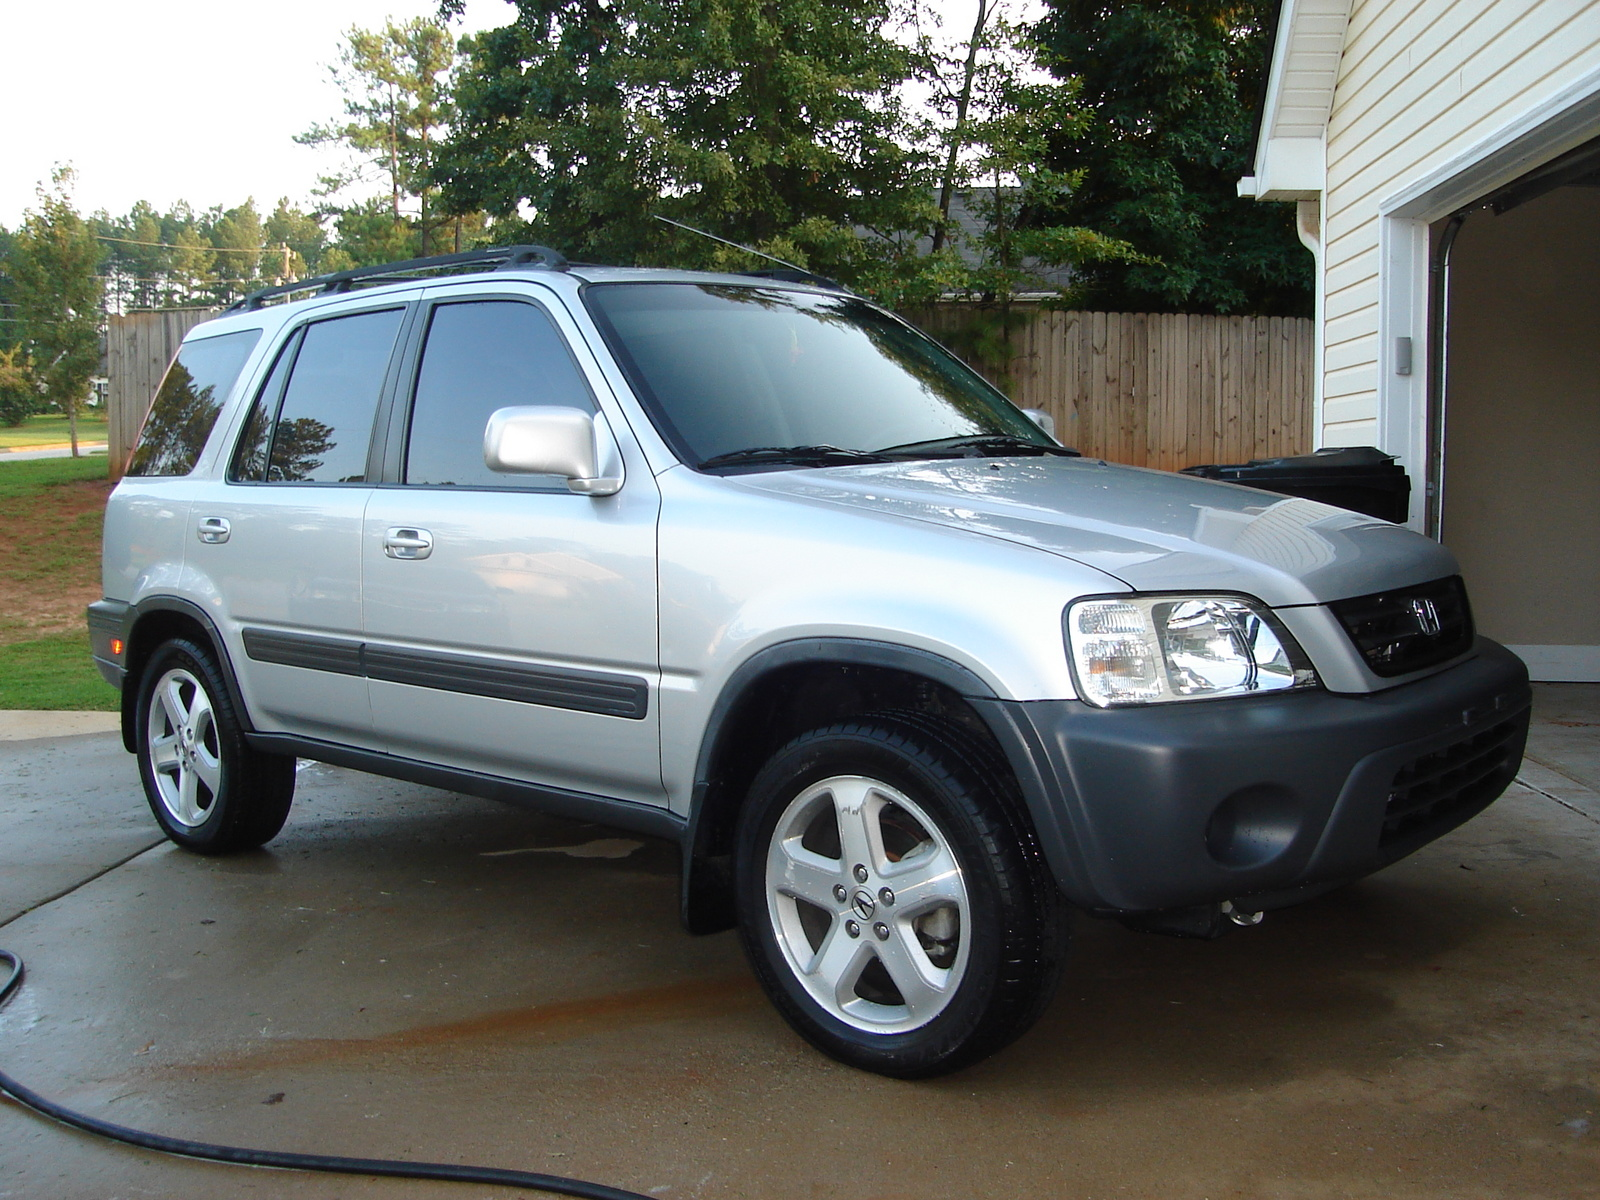 2000 Honda Cr V Pictures C3856 on 2015 honda pilot awd